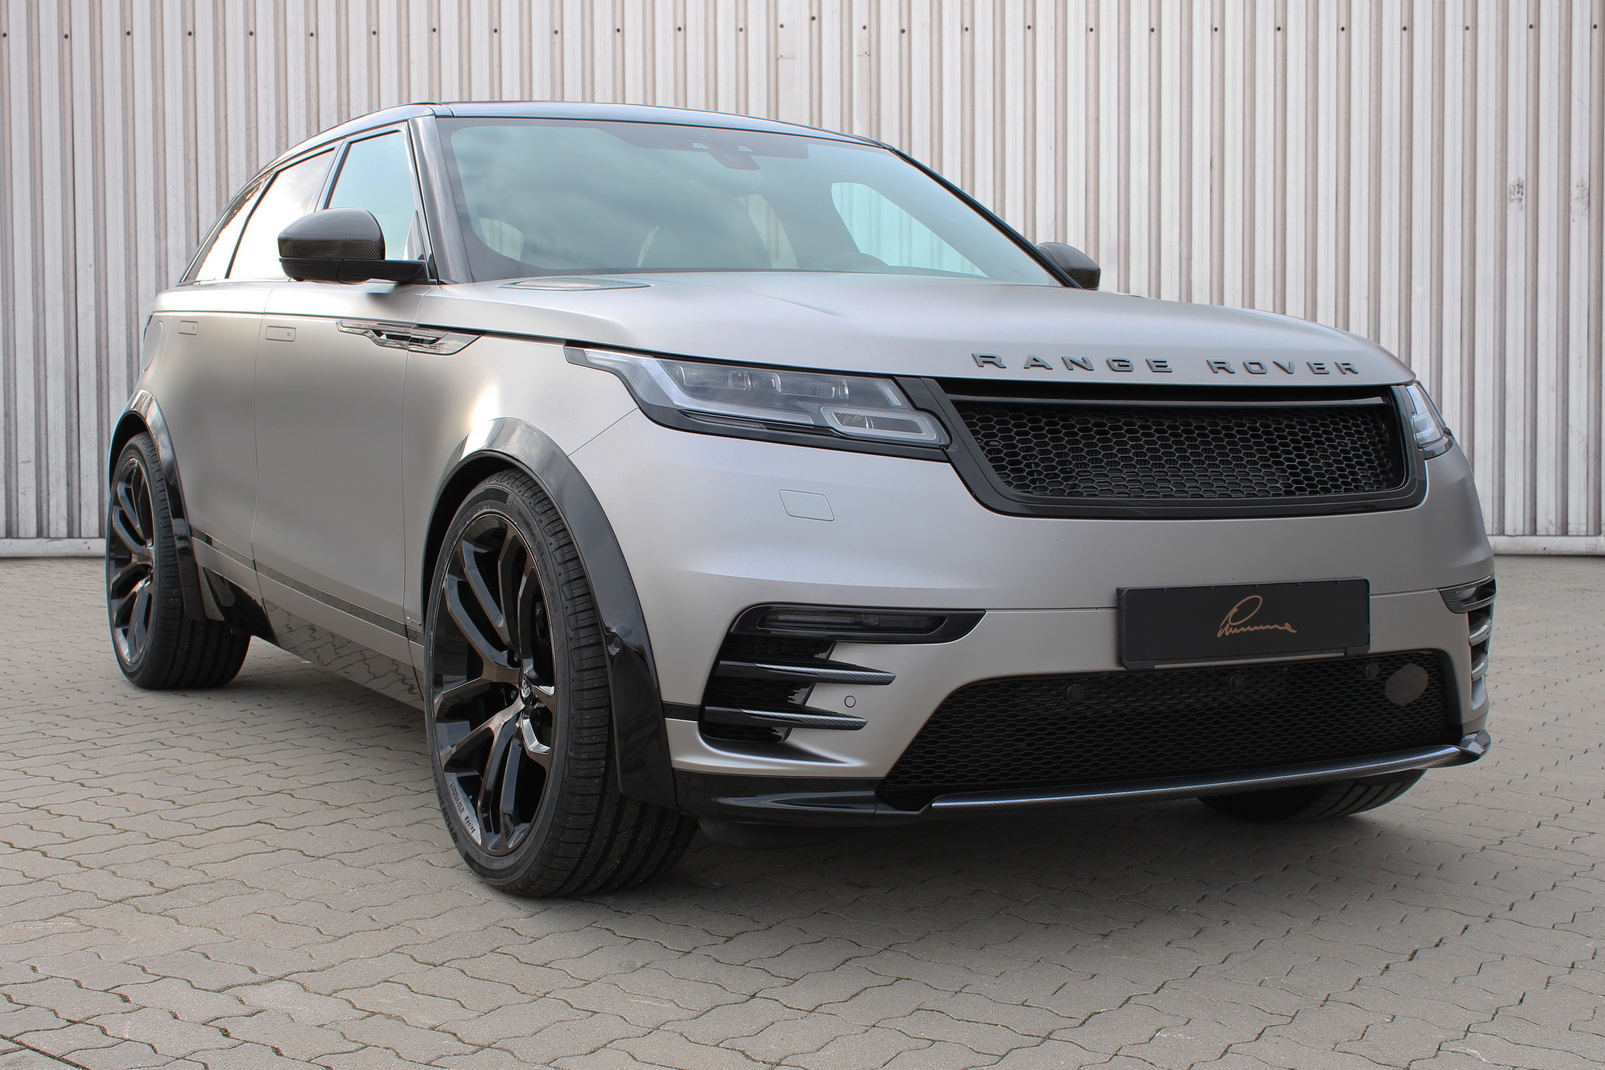 range rover velar by lumma design carz tuning. Black Bedroom Furniture Sets. Home Design Ideas